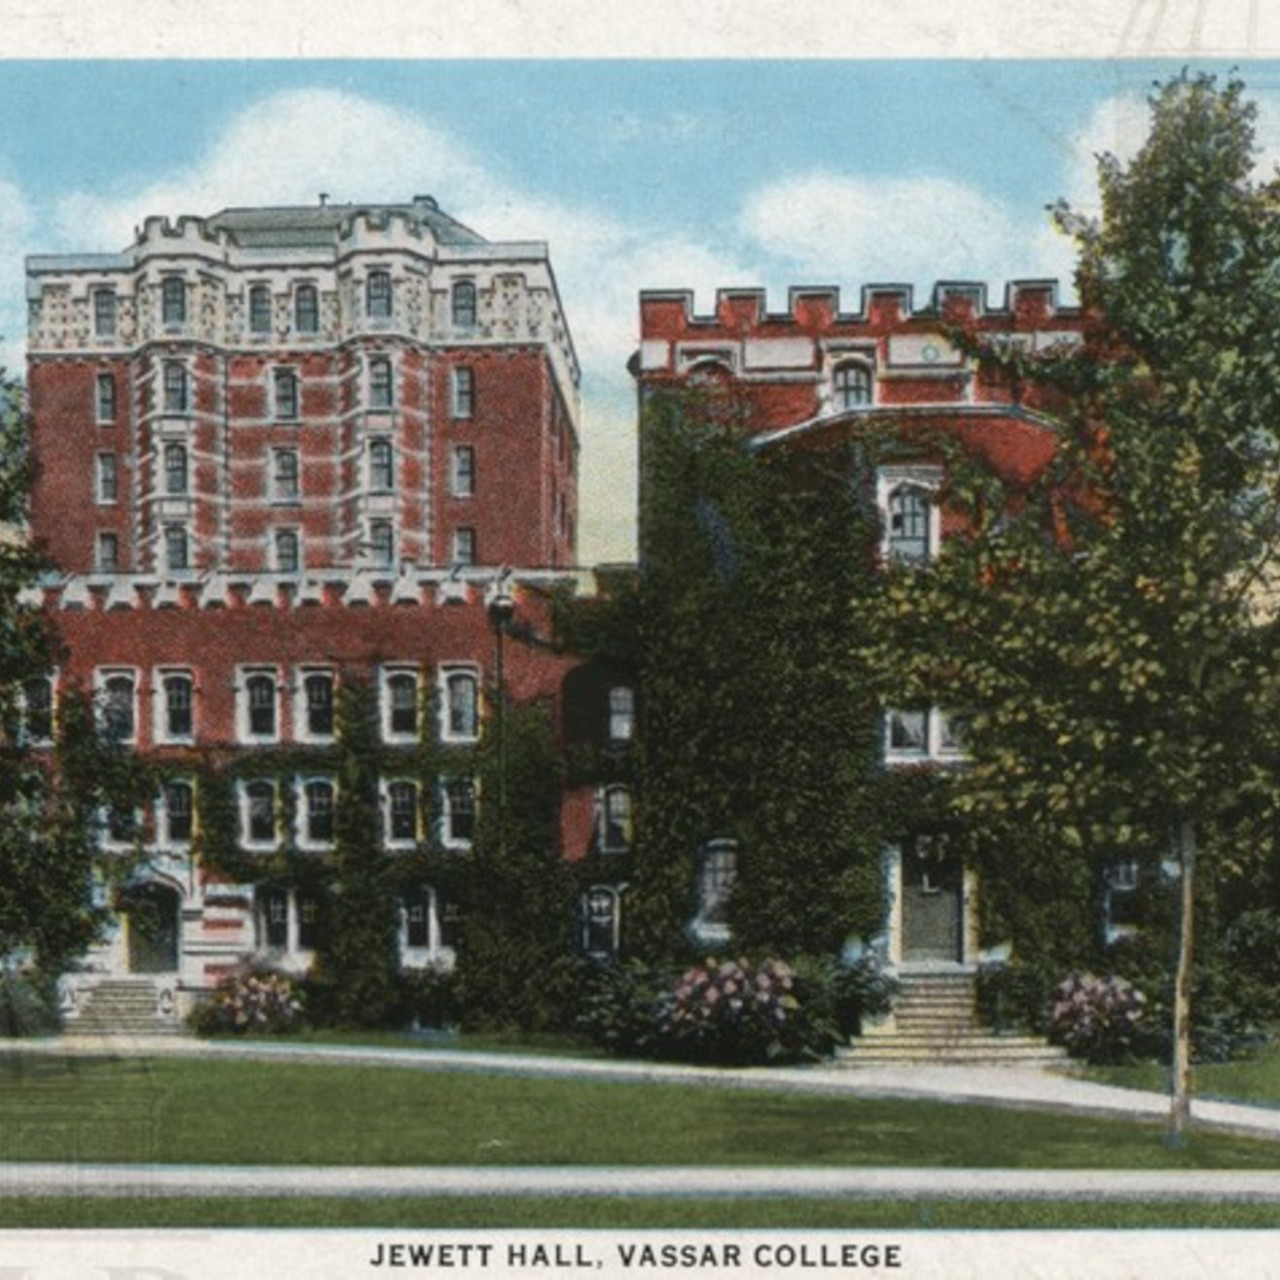 Jewett Hall, Vassar College